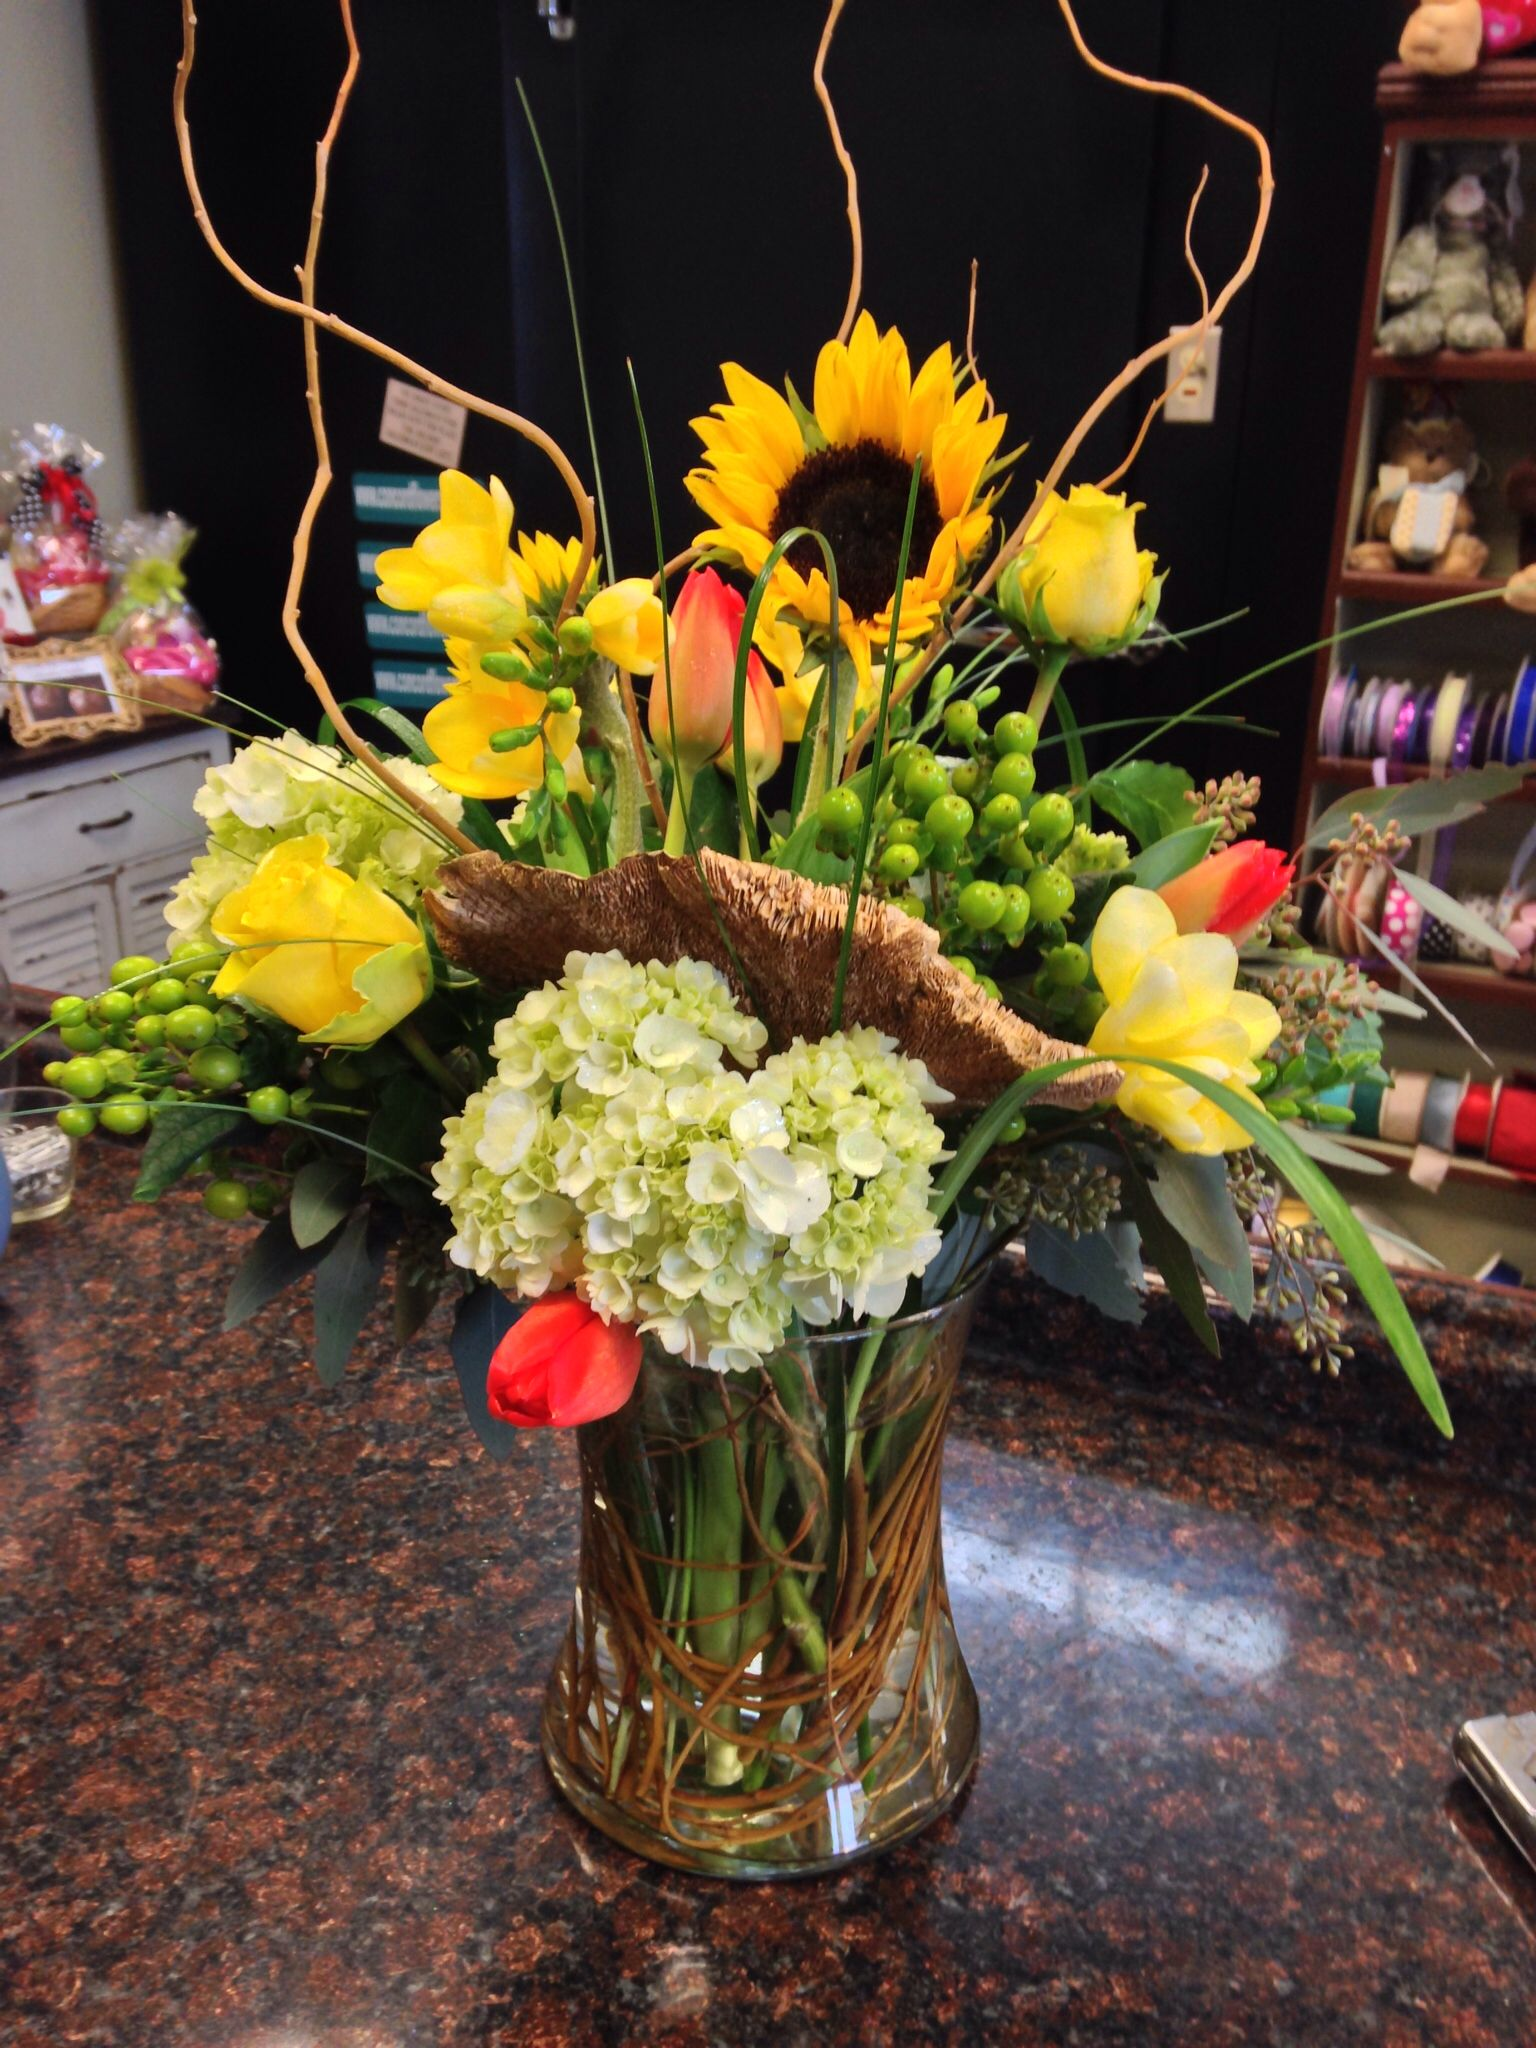 Natural Elements With Bright Spring Flowers Birthdays Pinterest